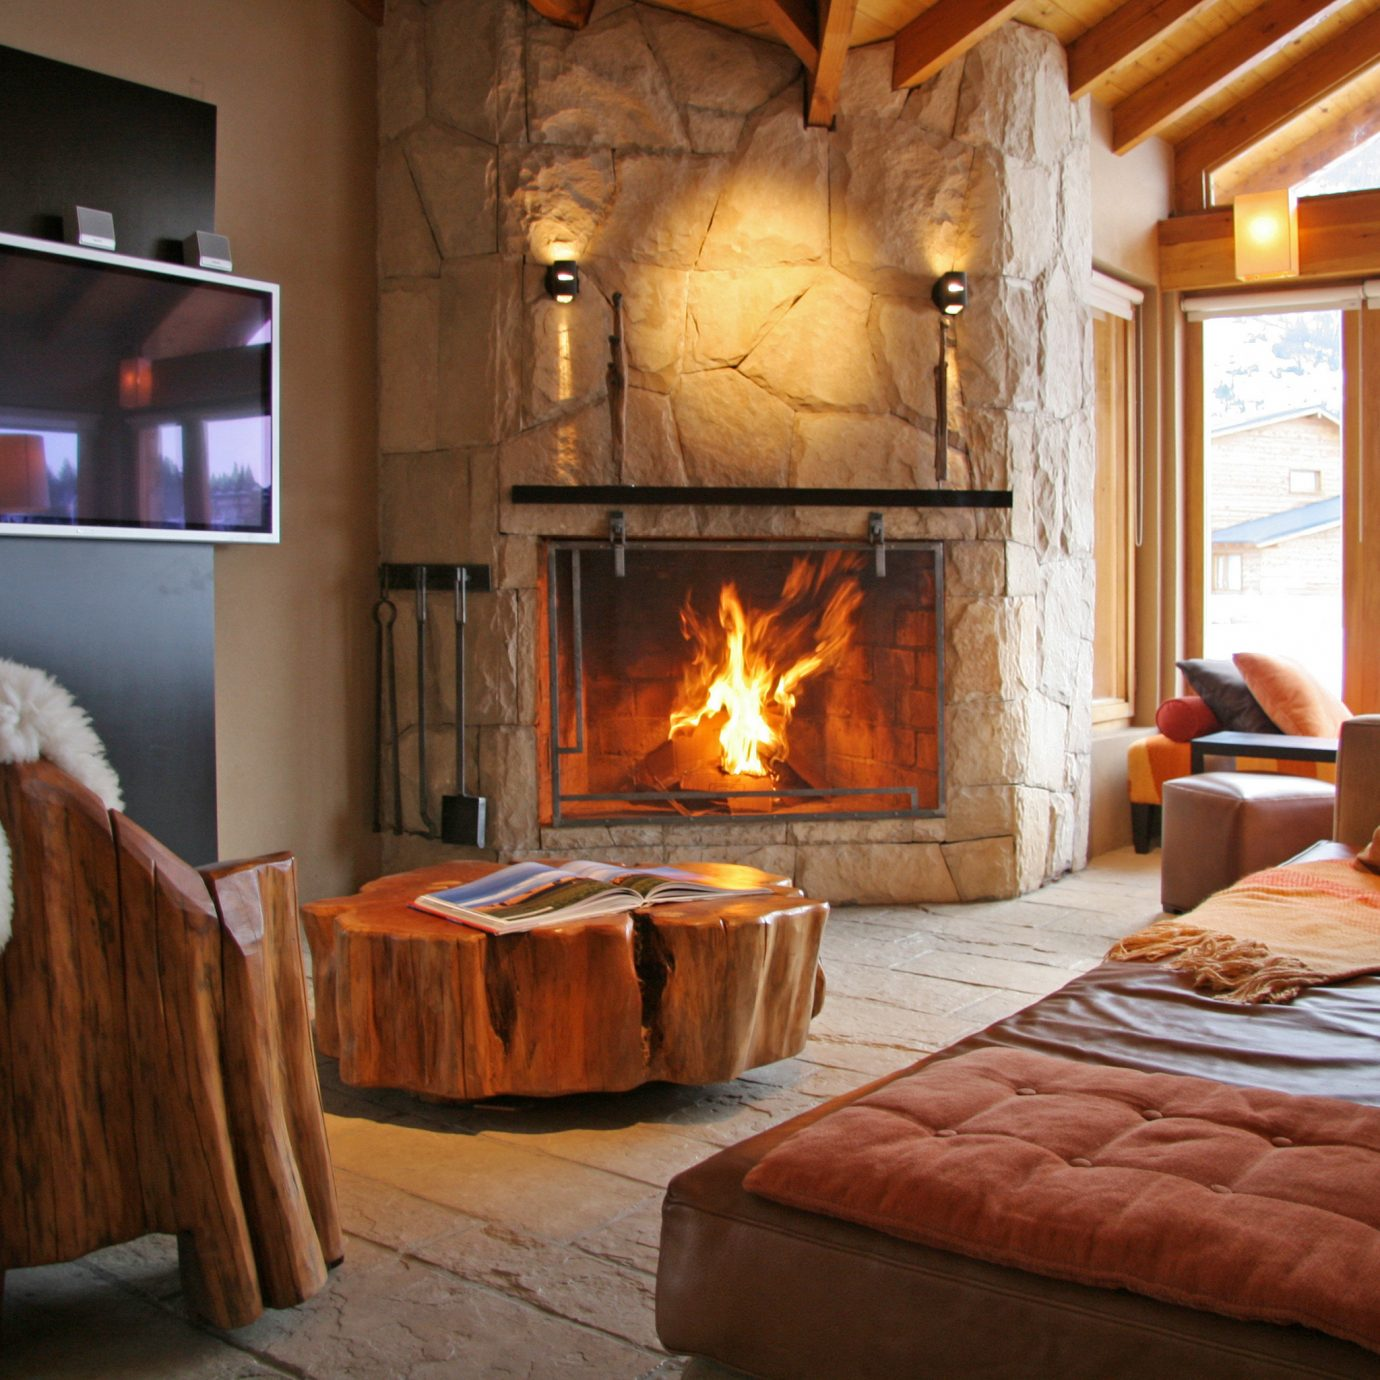 Fireplace property living room fire home cottage hardwood hearth farmhouse Bedroom stone